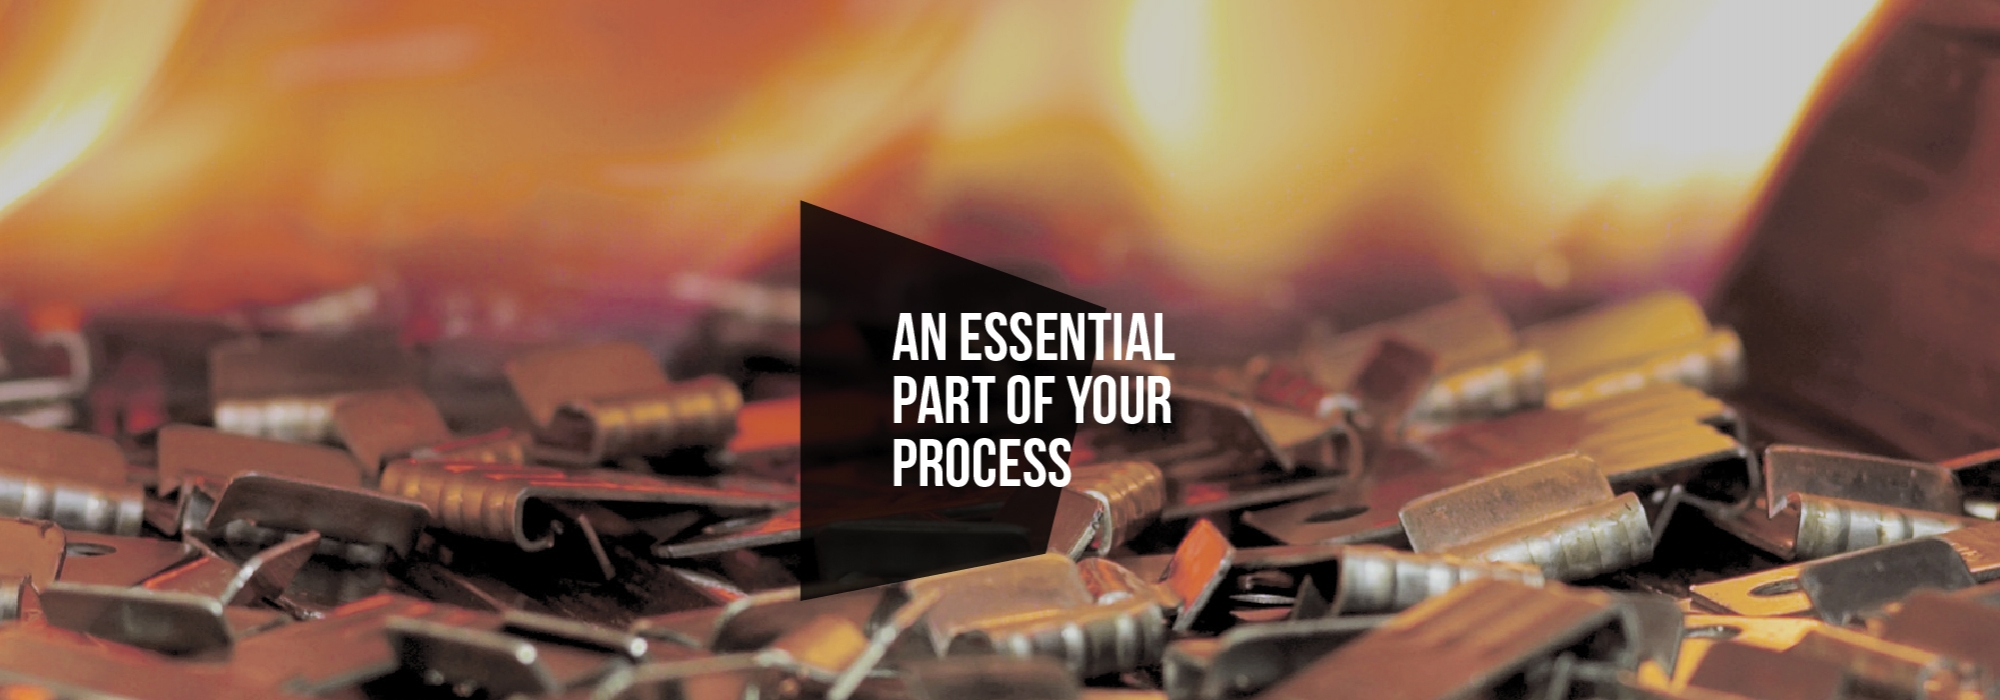 an-essential-part-of-your-process